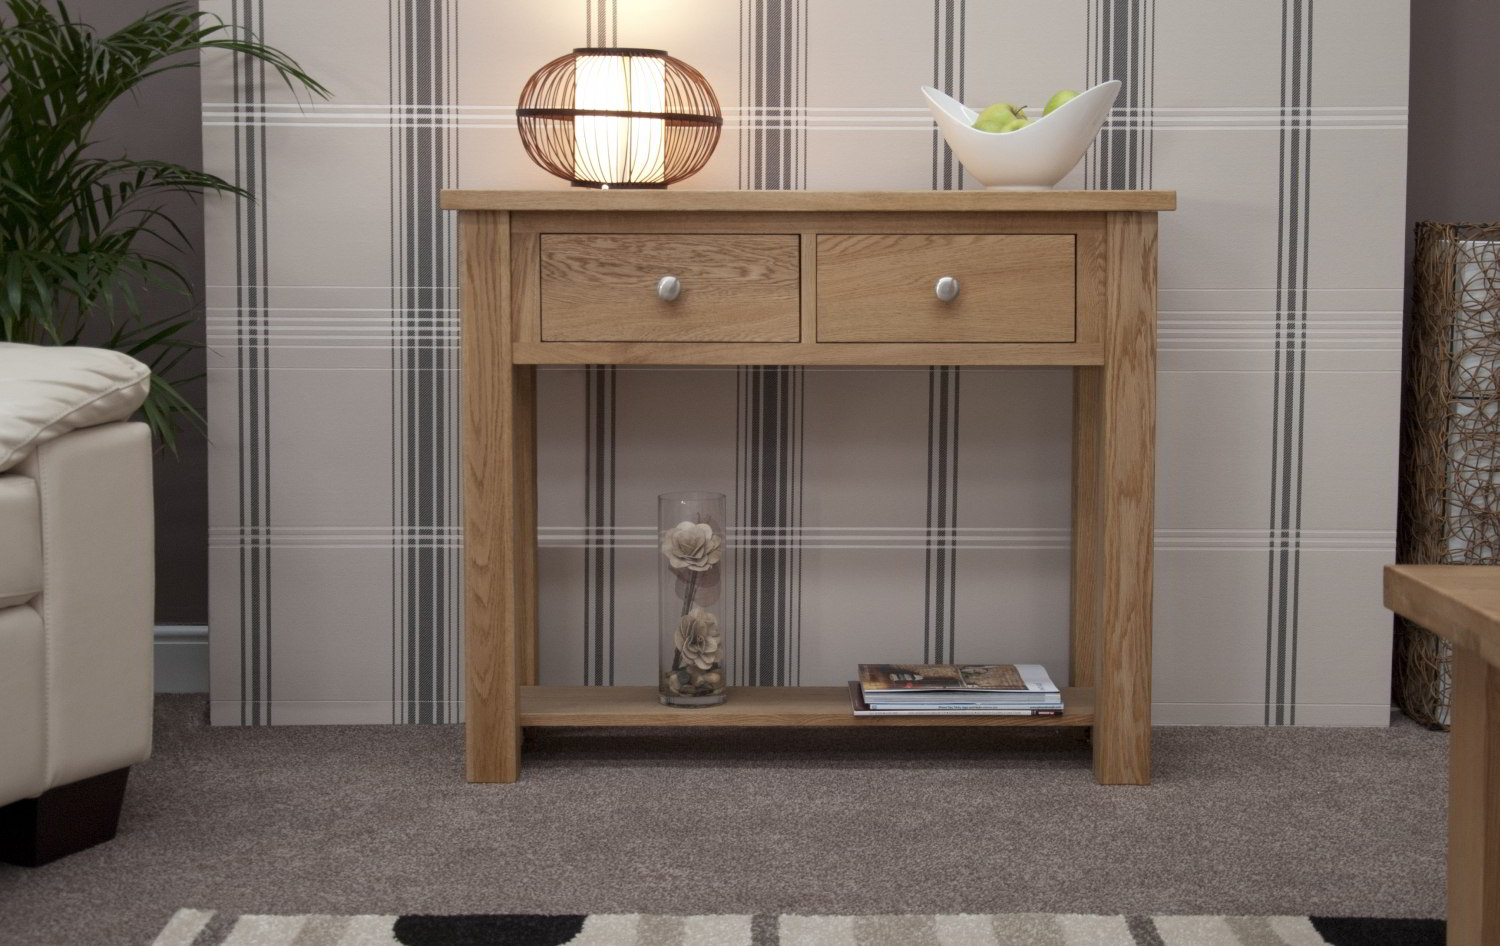 Kingston solid oak hallway furniture small console hall table ebay for Images of couch for hall rennes